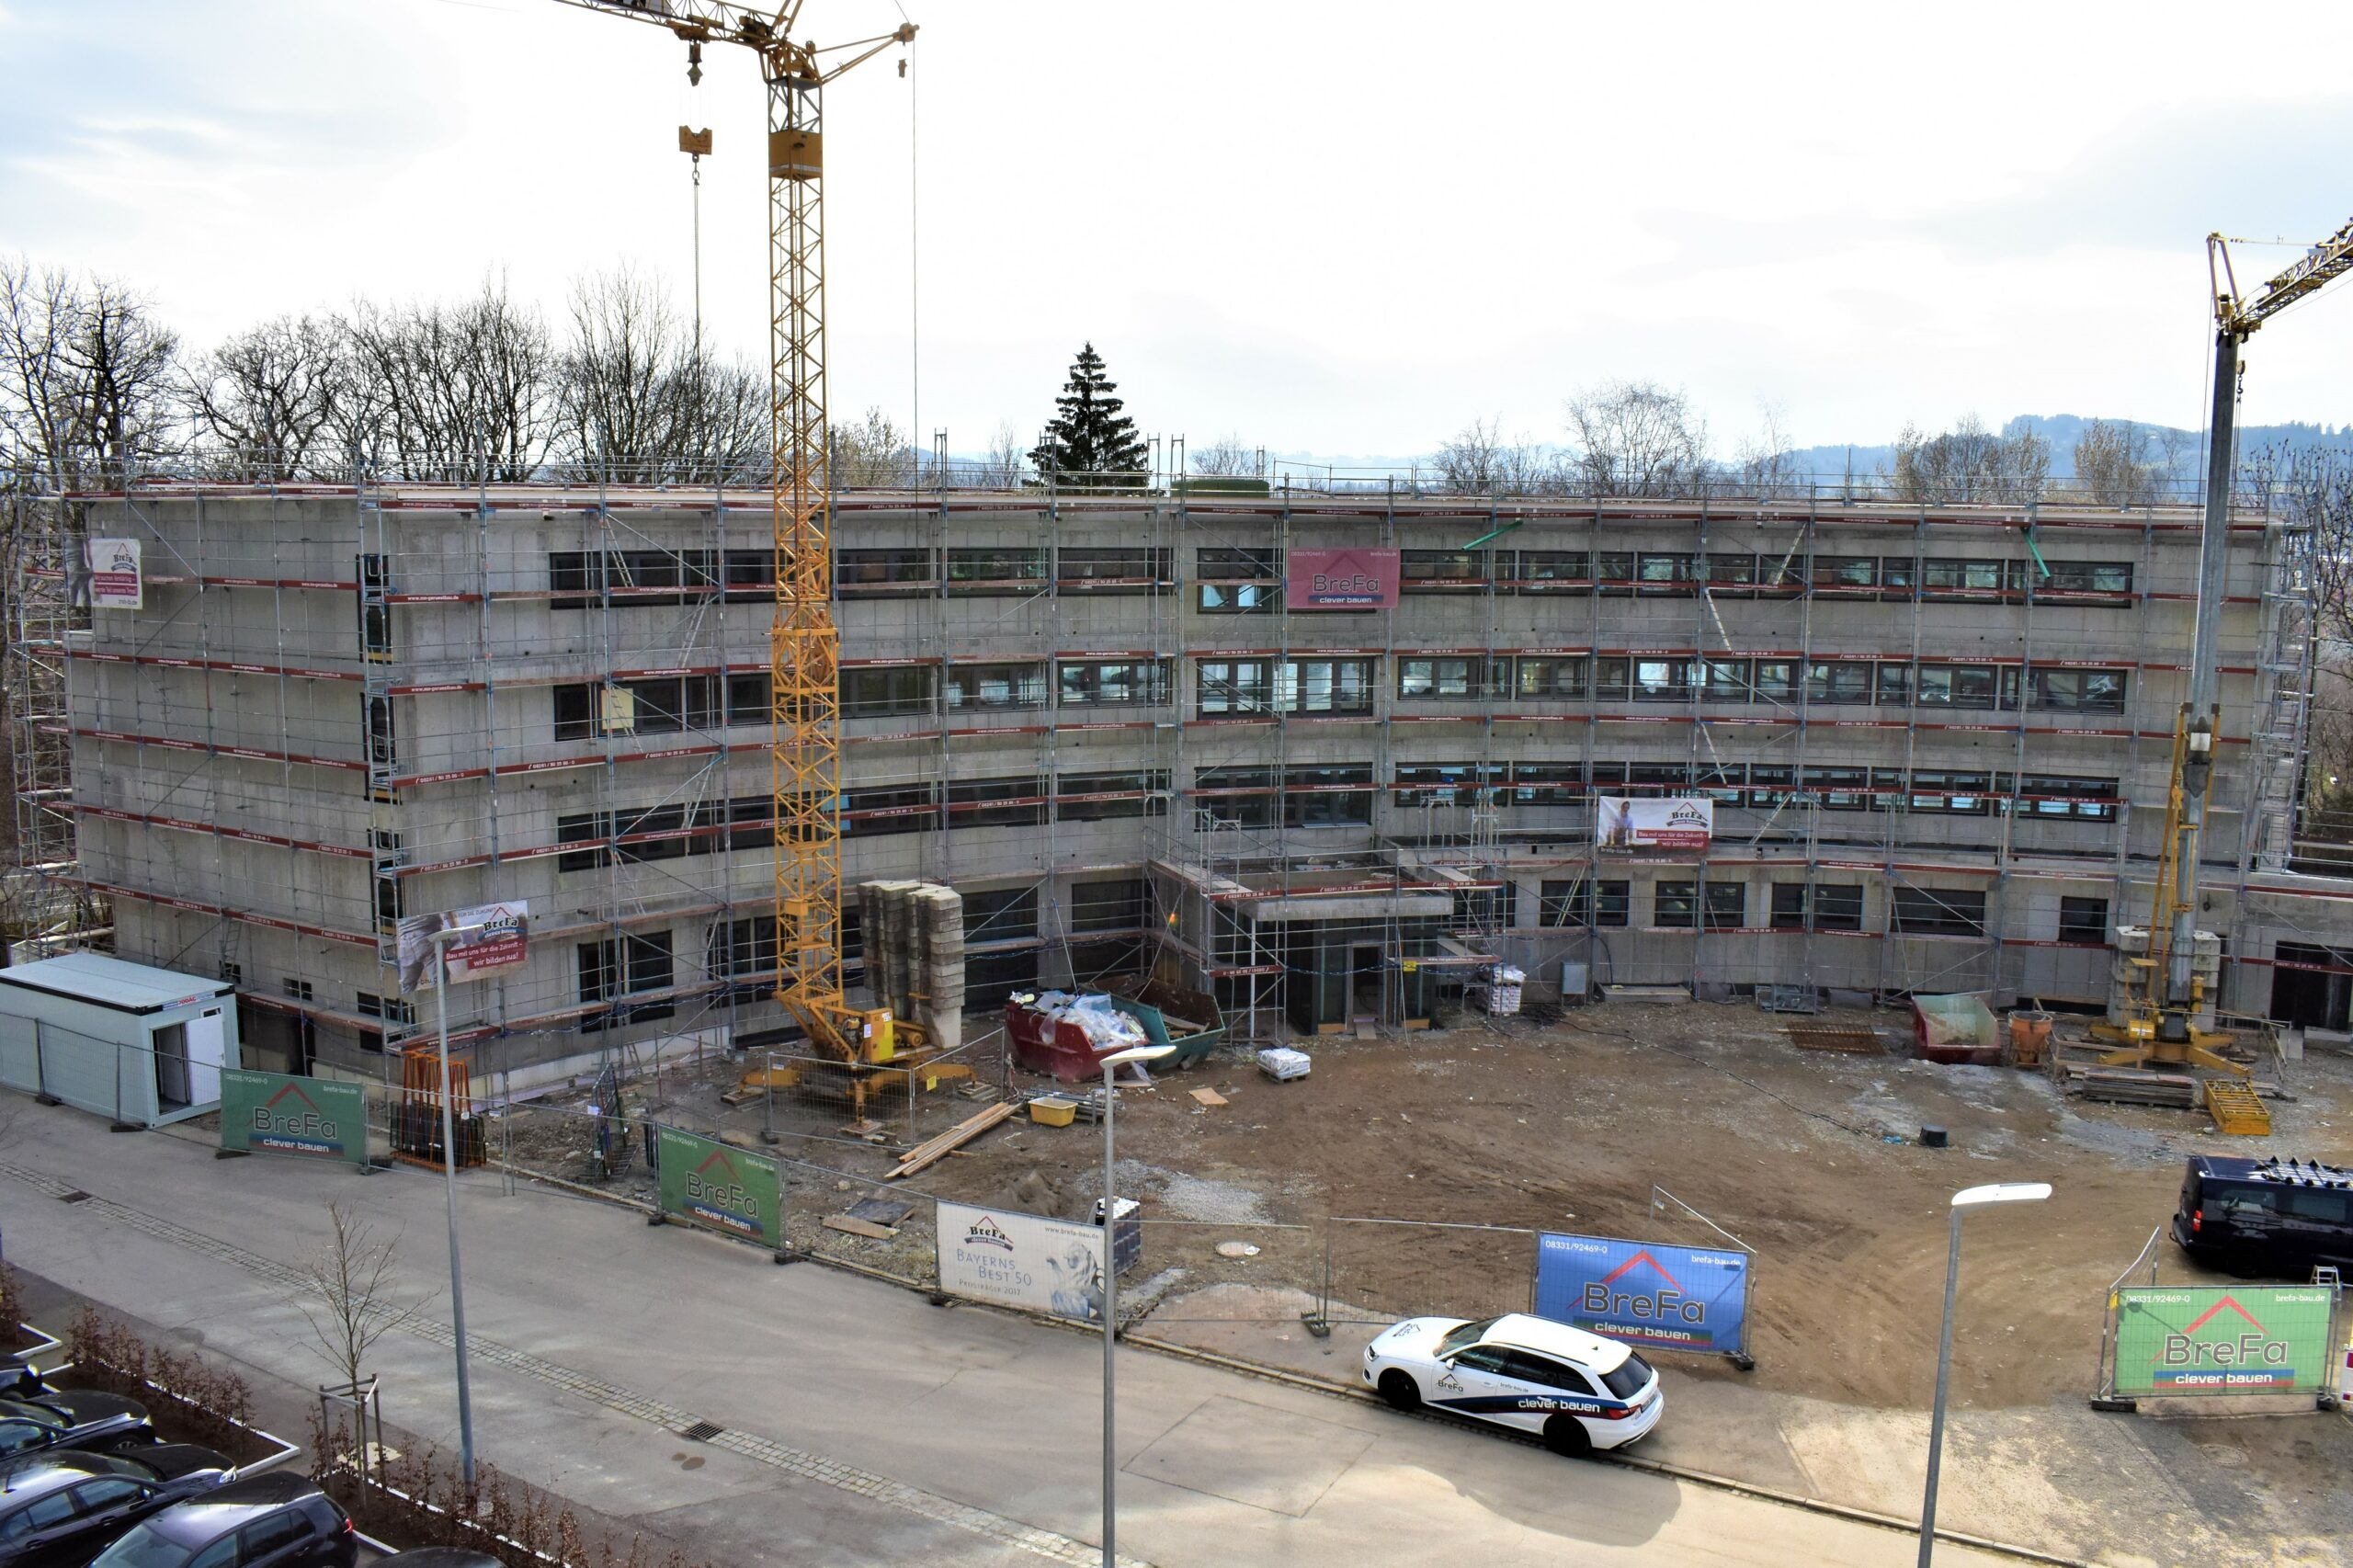 Construction in fast forward from May 2020 to January 2021